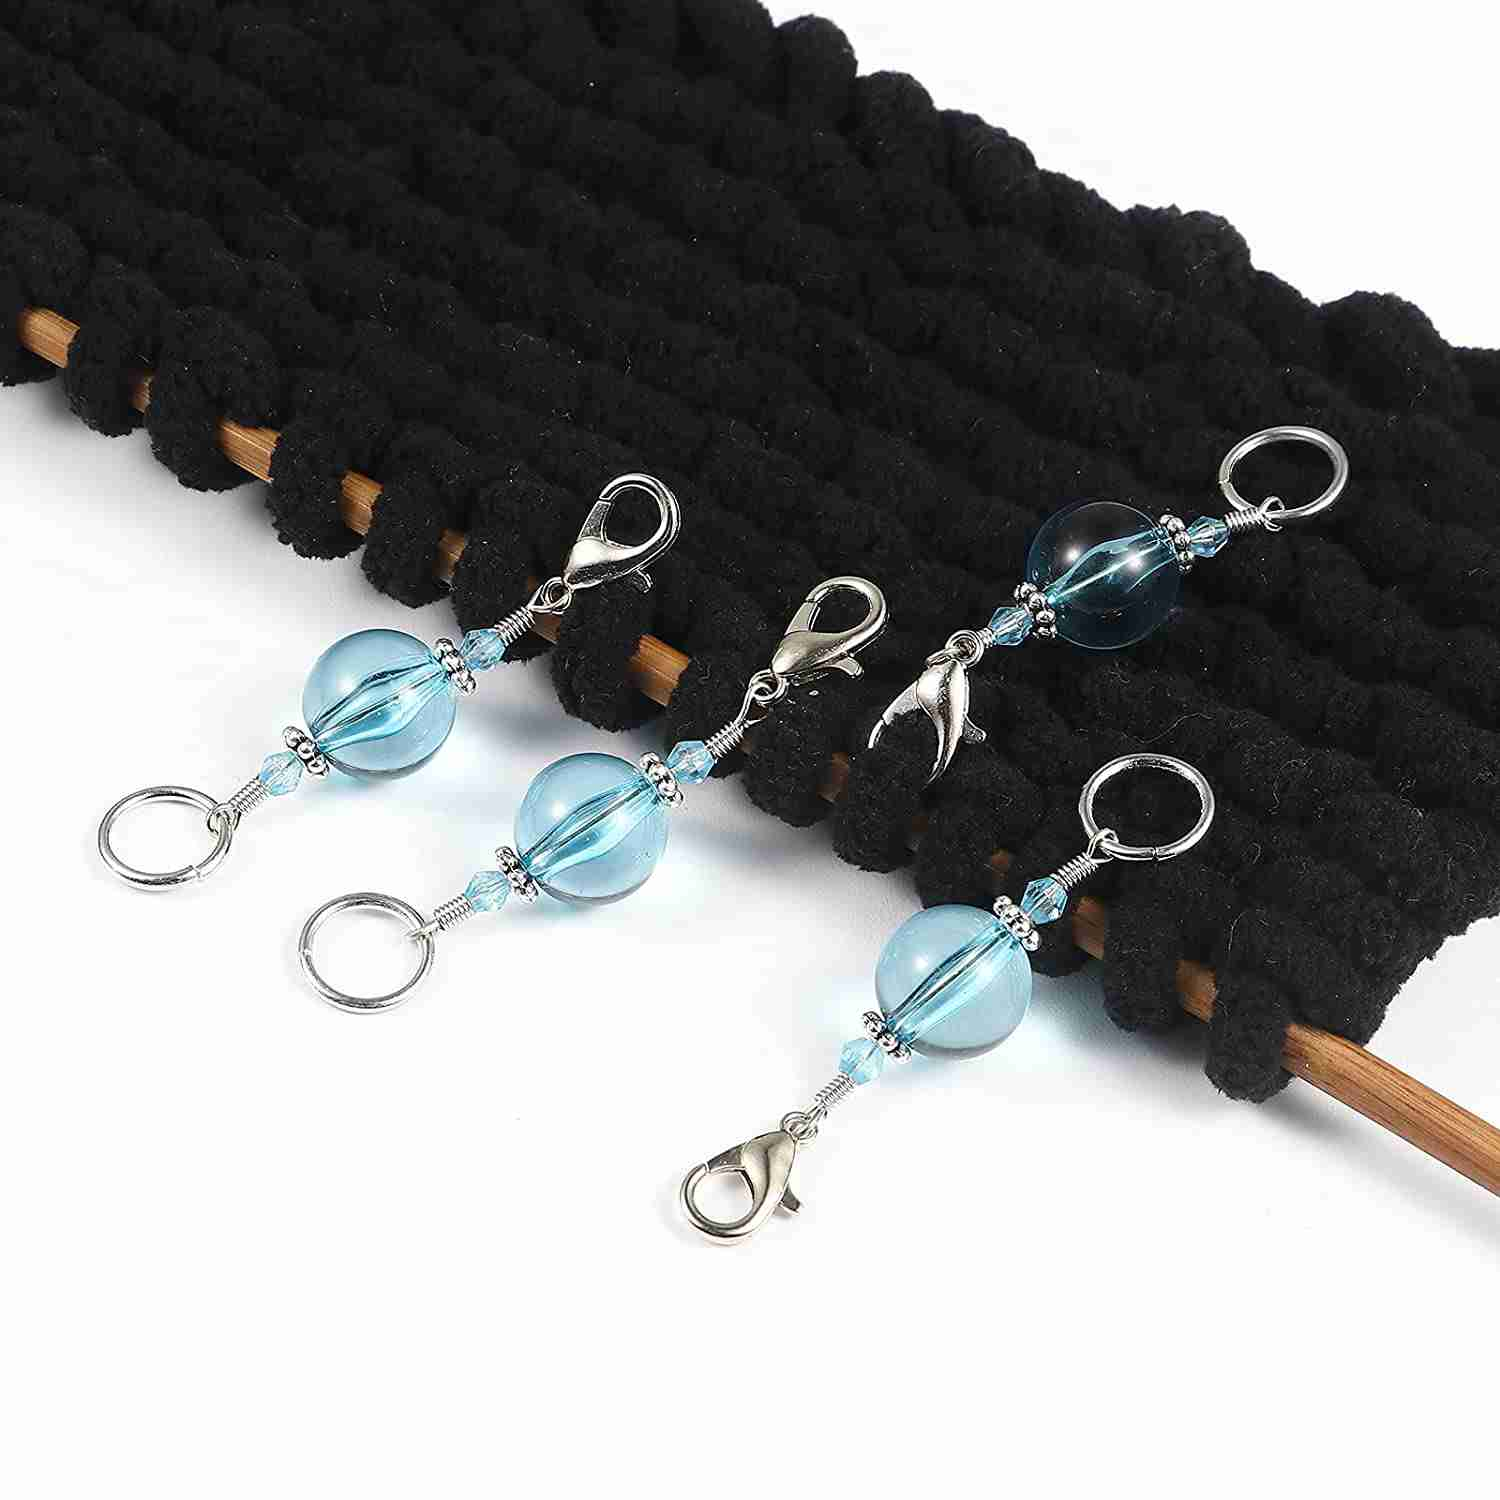 stitch-markers with discount code